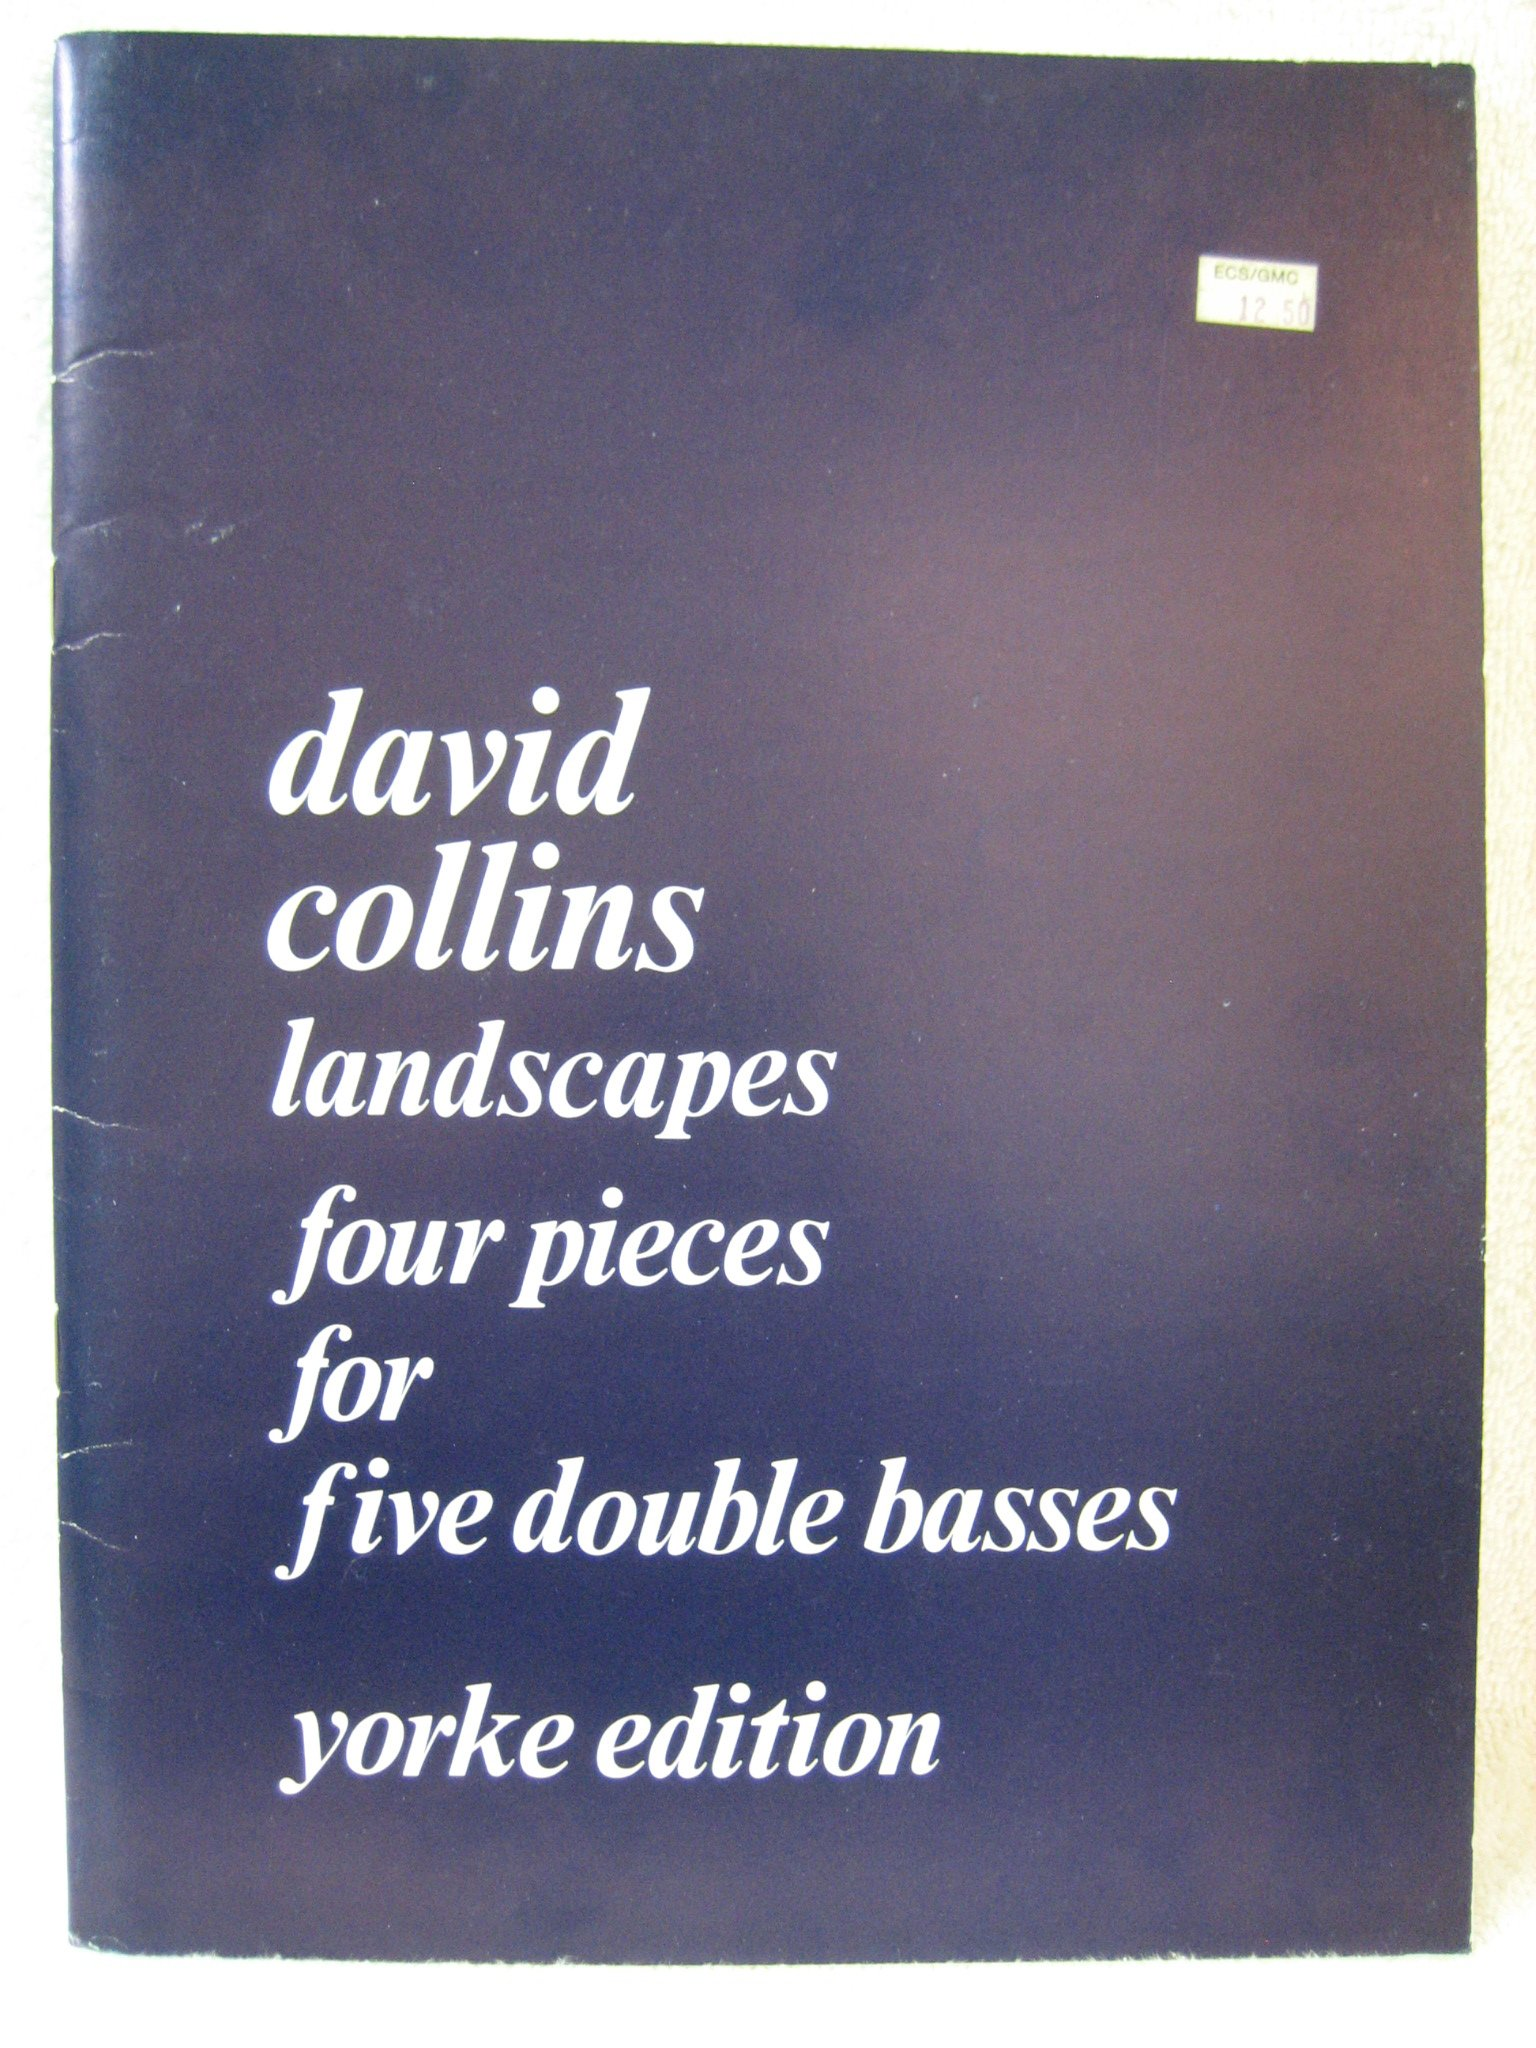 david collins four pieces for five double basses sheet music yorke edition